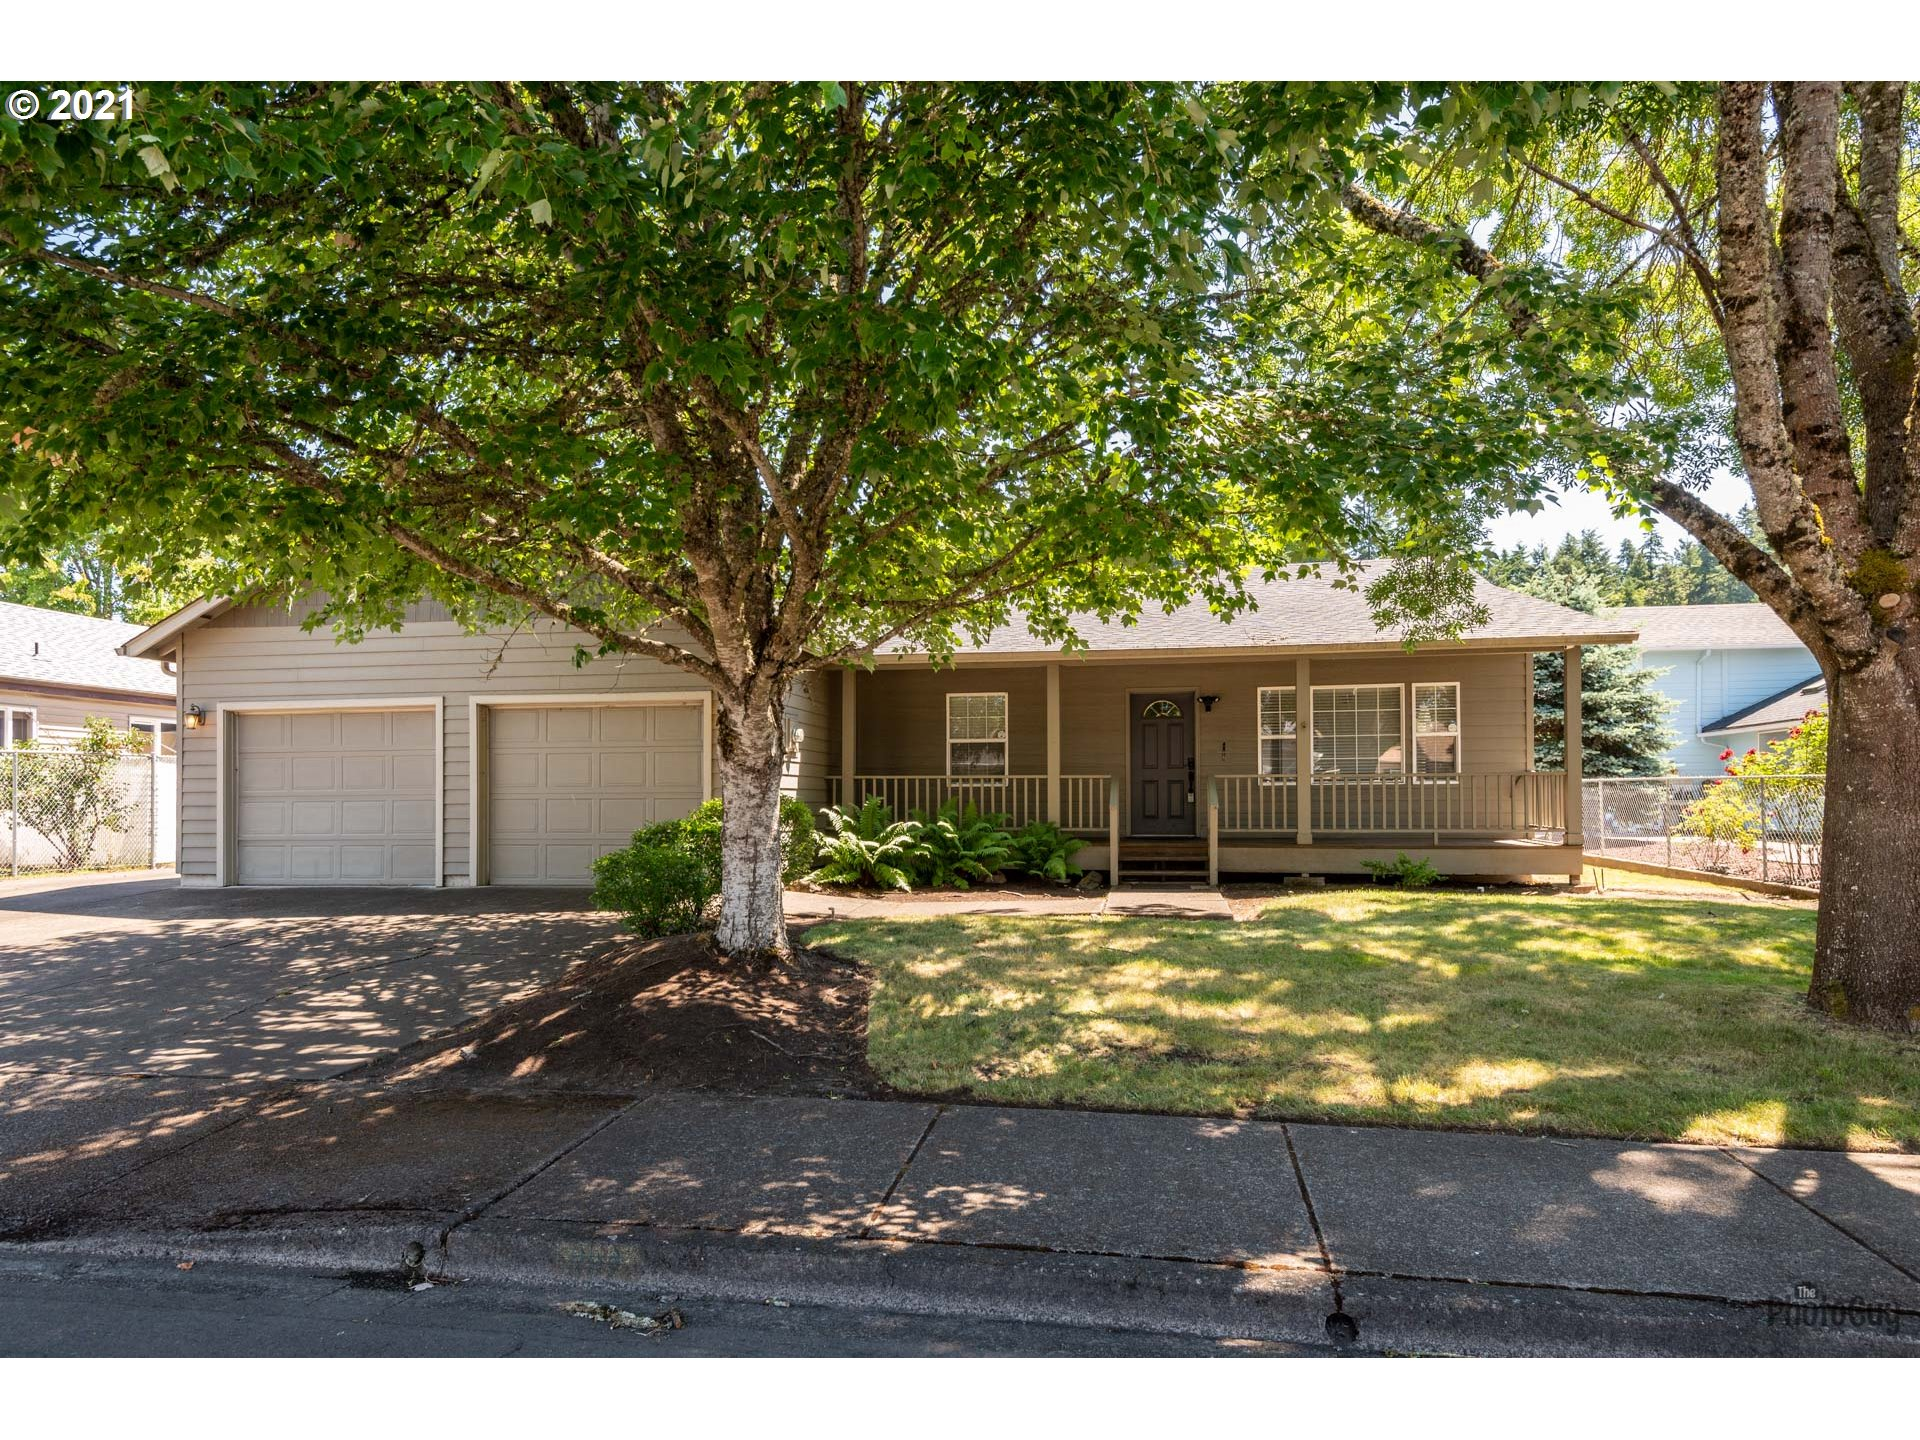 887 S 46TH ST, Springfield OR 97478